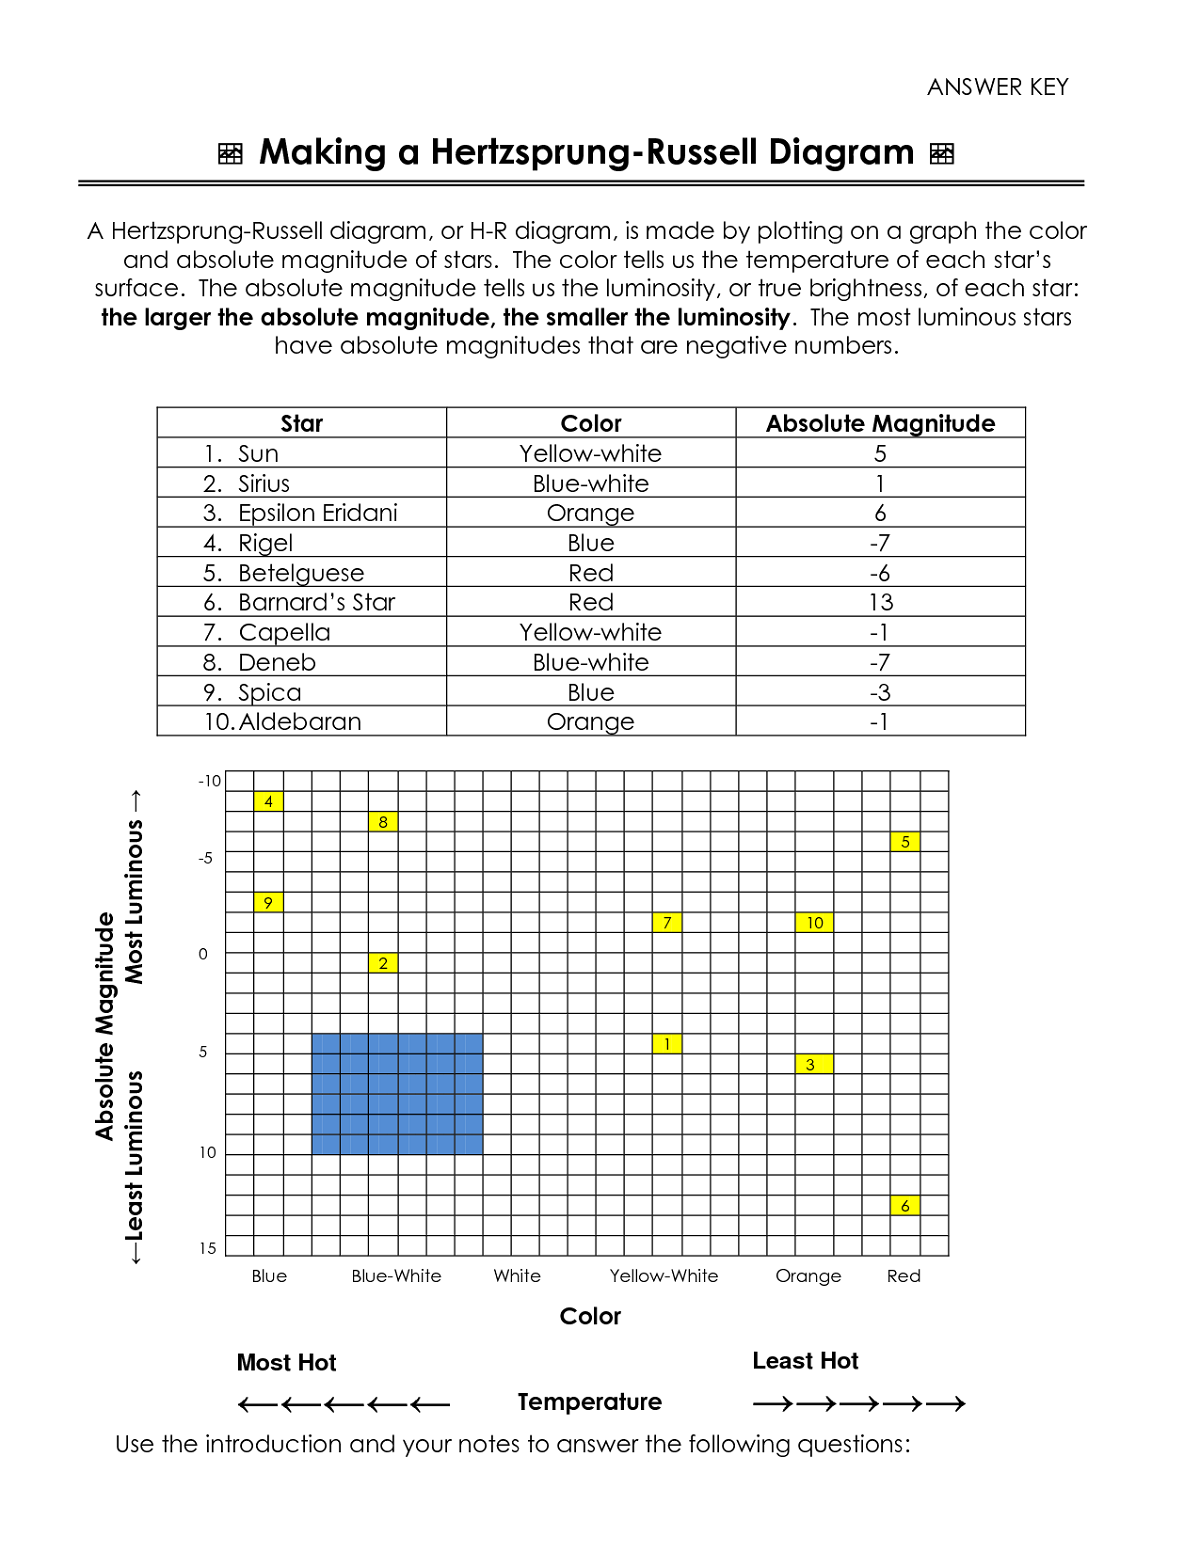 HR Diagram Worksheet with Answers